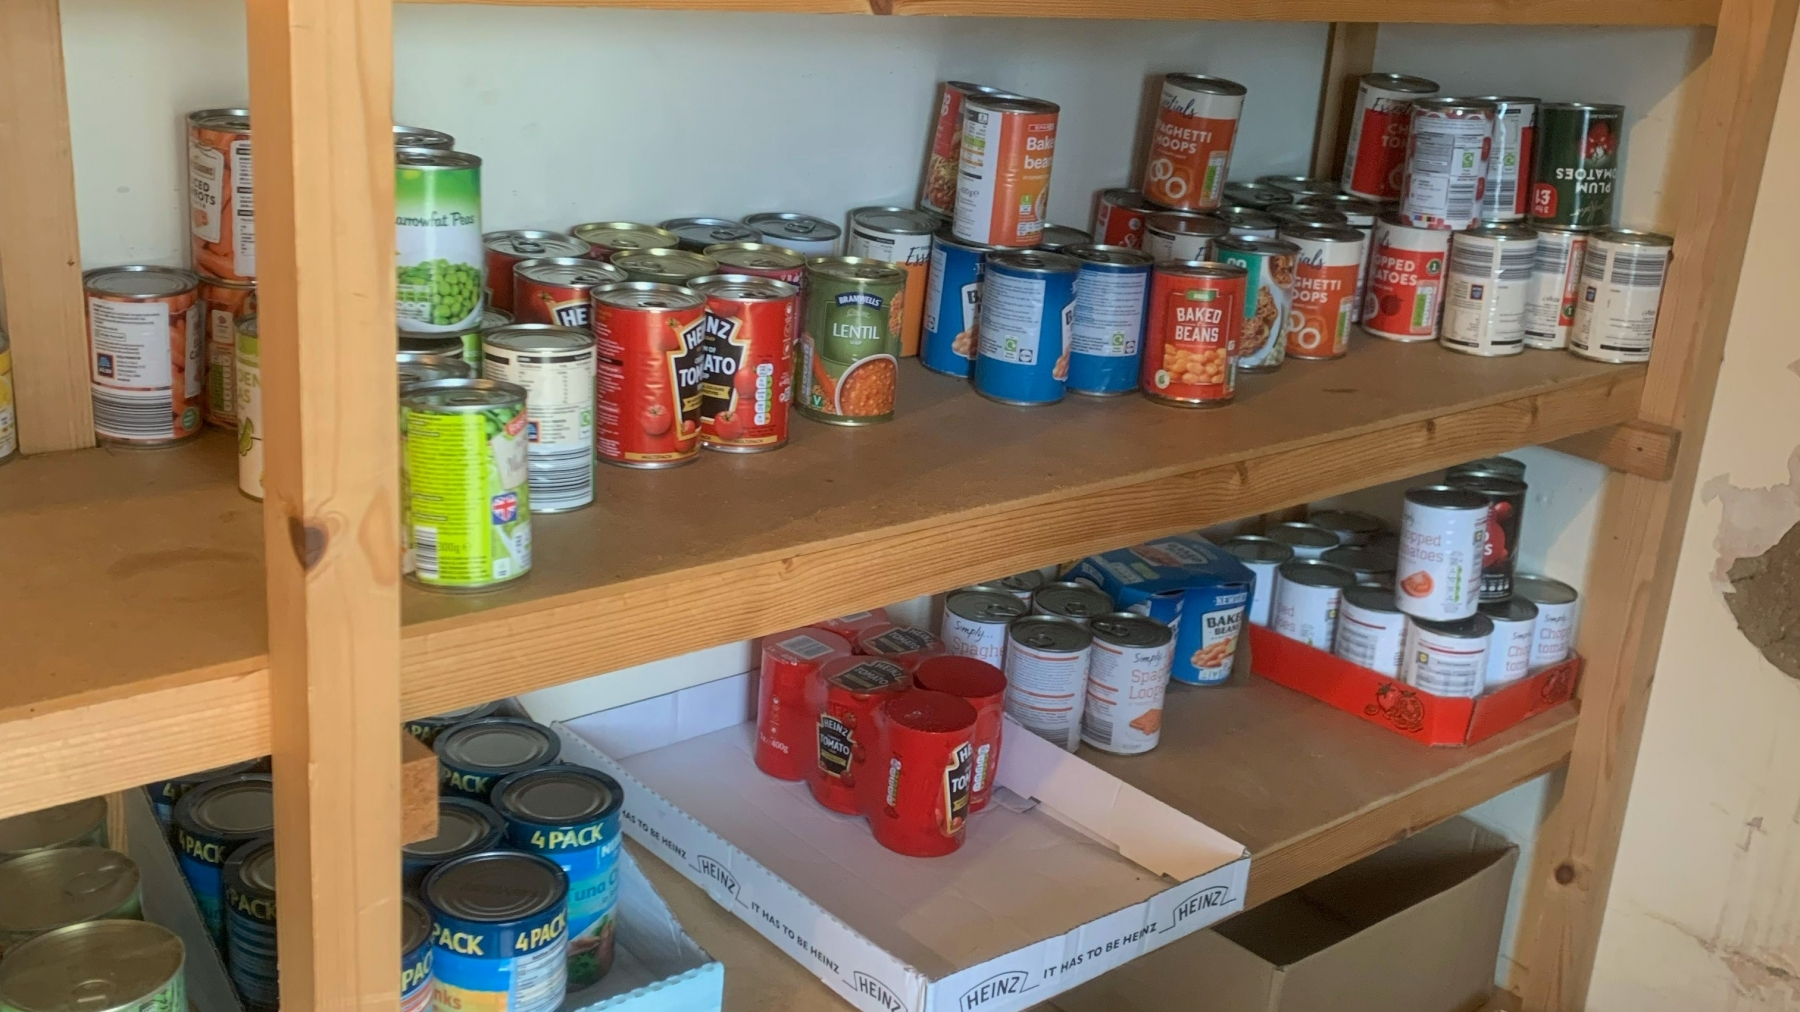 The Sutton on Sea Community Larder is Caring, Sharing and Supporting Those in Most Need with the Support of the LIncoln Food Hub